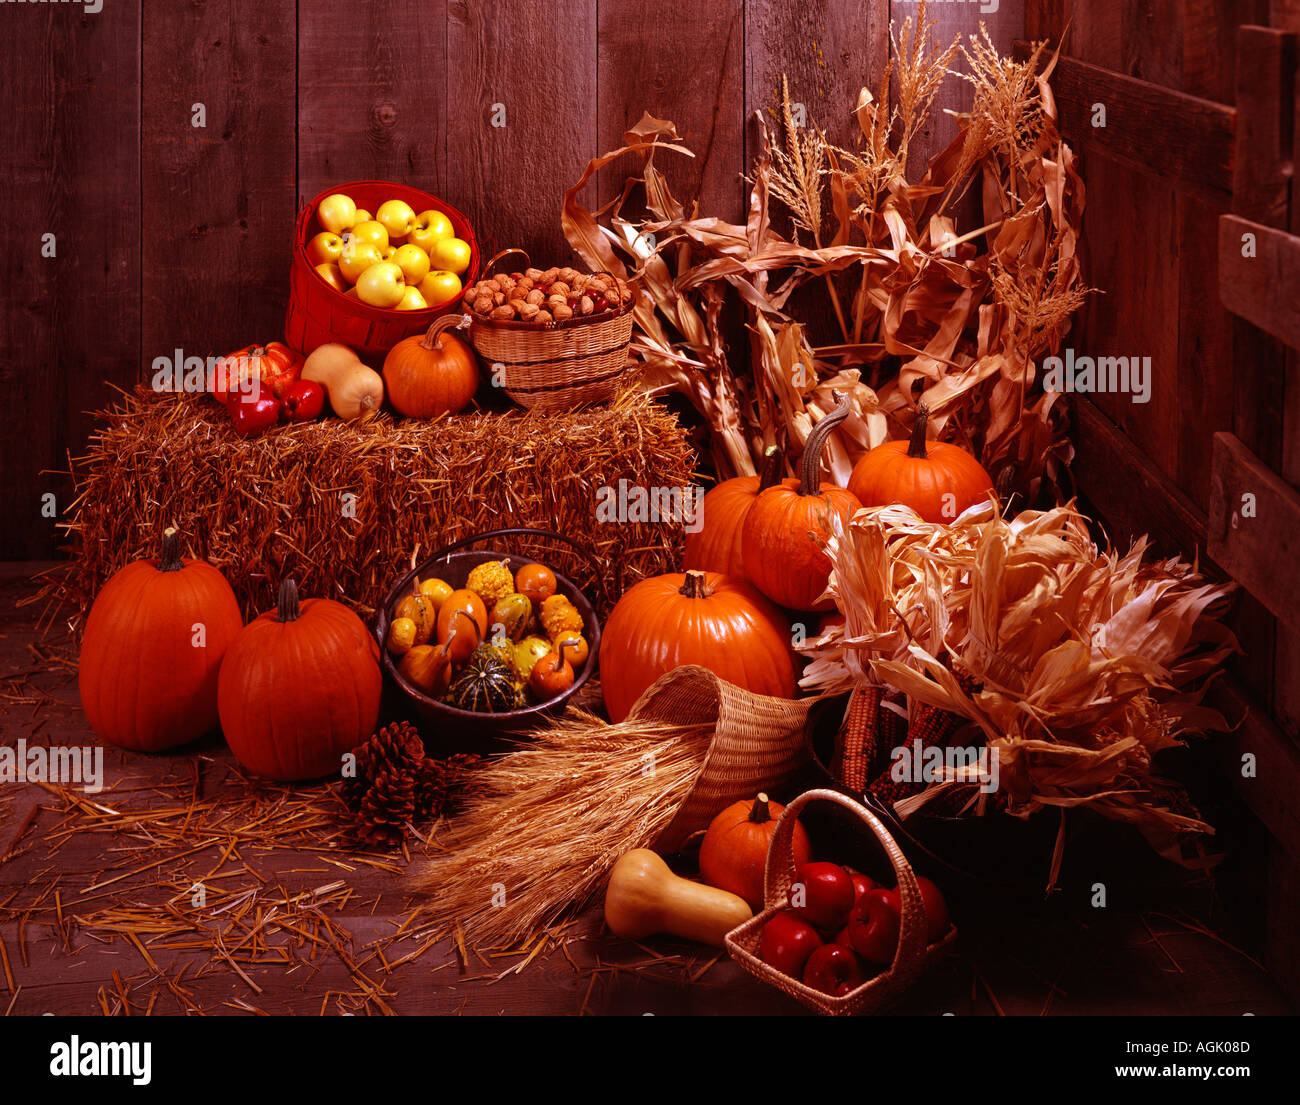 Harvest still life featuring hay bales apples corn straw pumpkins gourds pine cones cornucopia against weathered - Stock Image